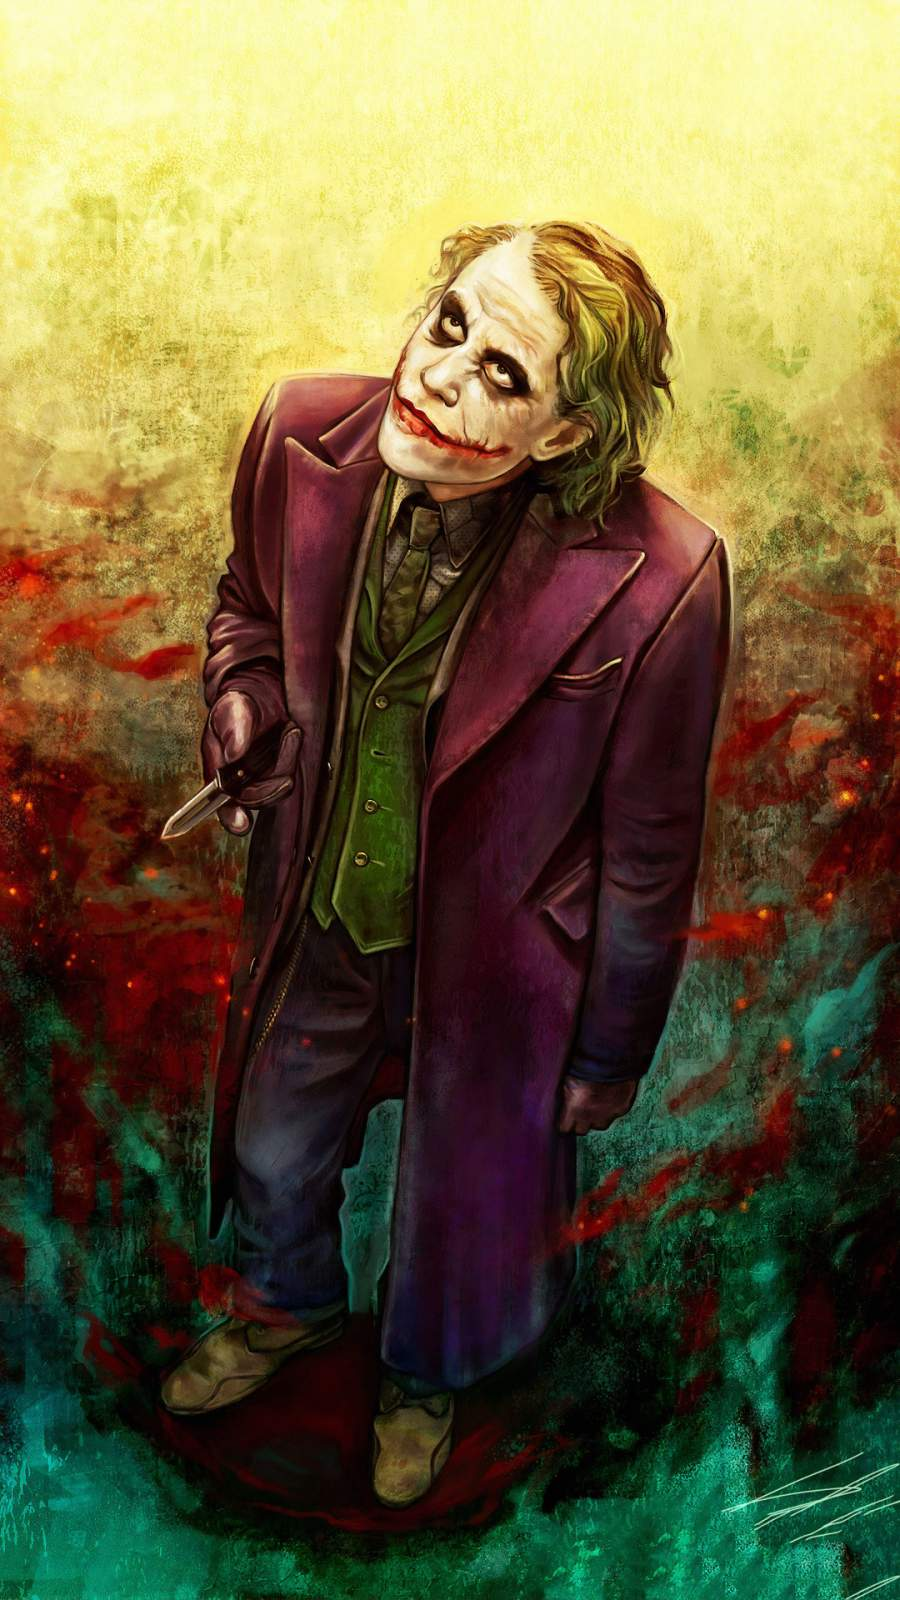 Joker Heath Ledger Art iPhone Wallpaper